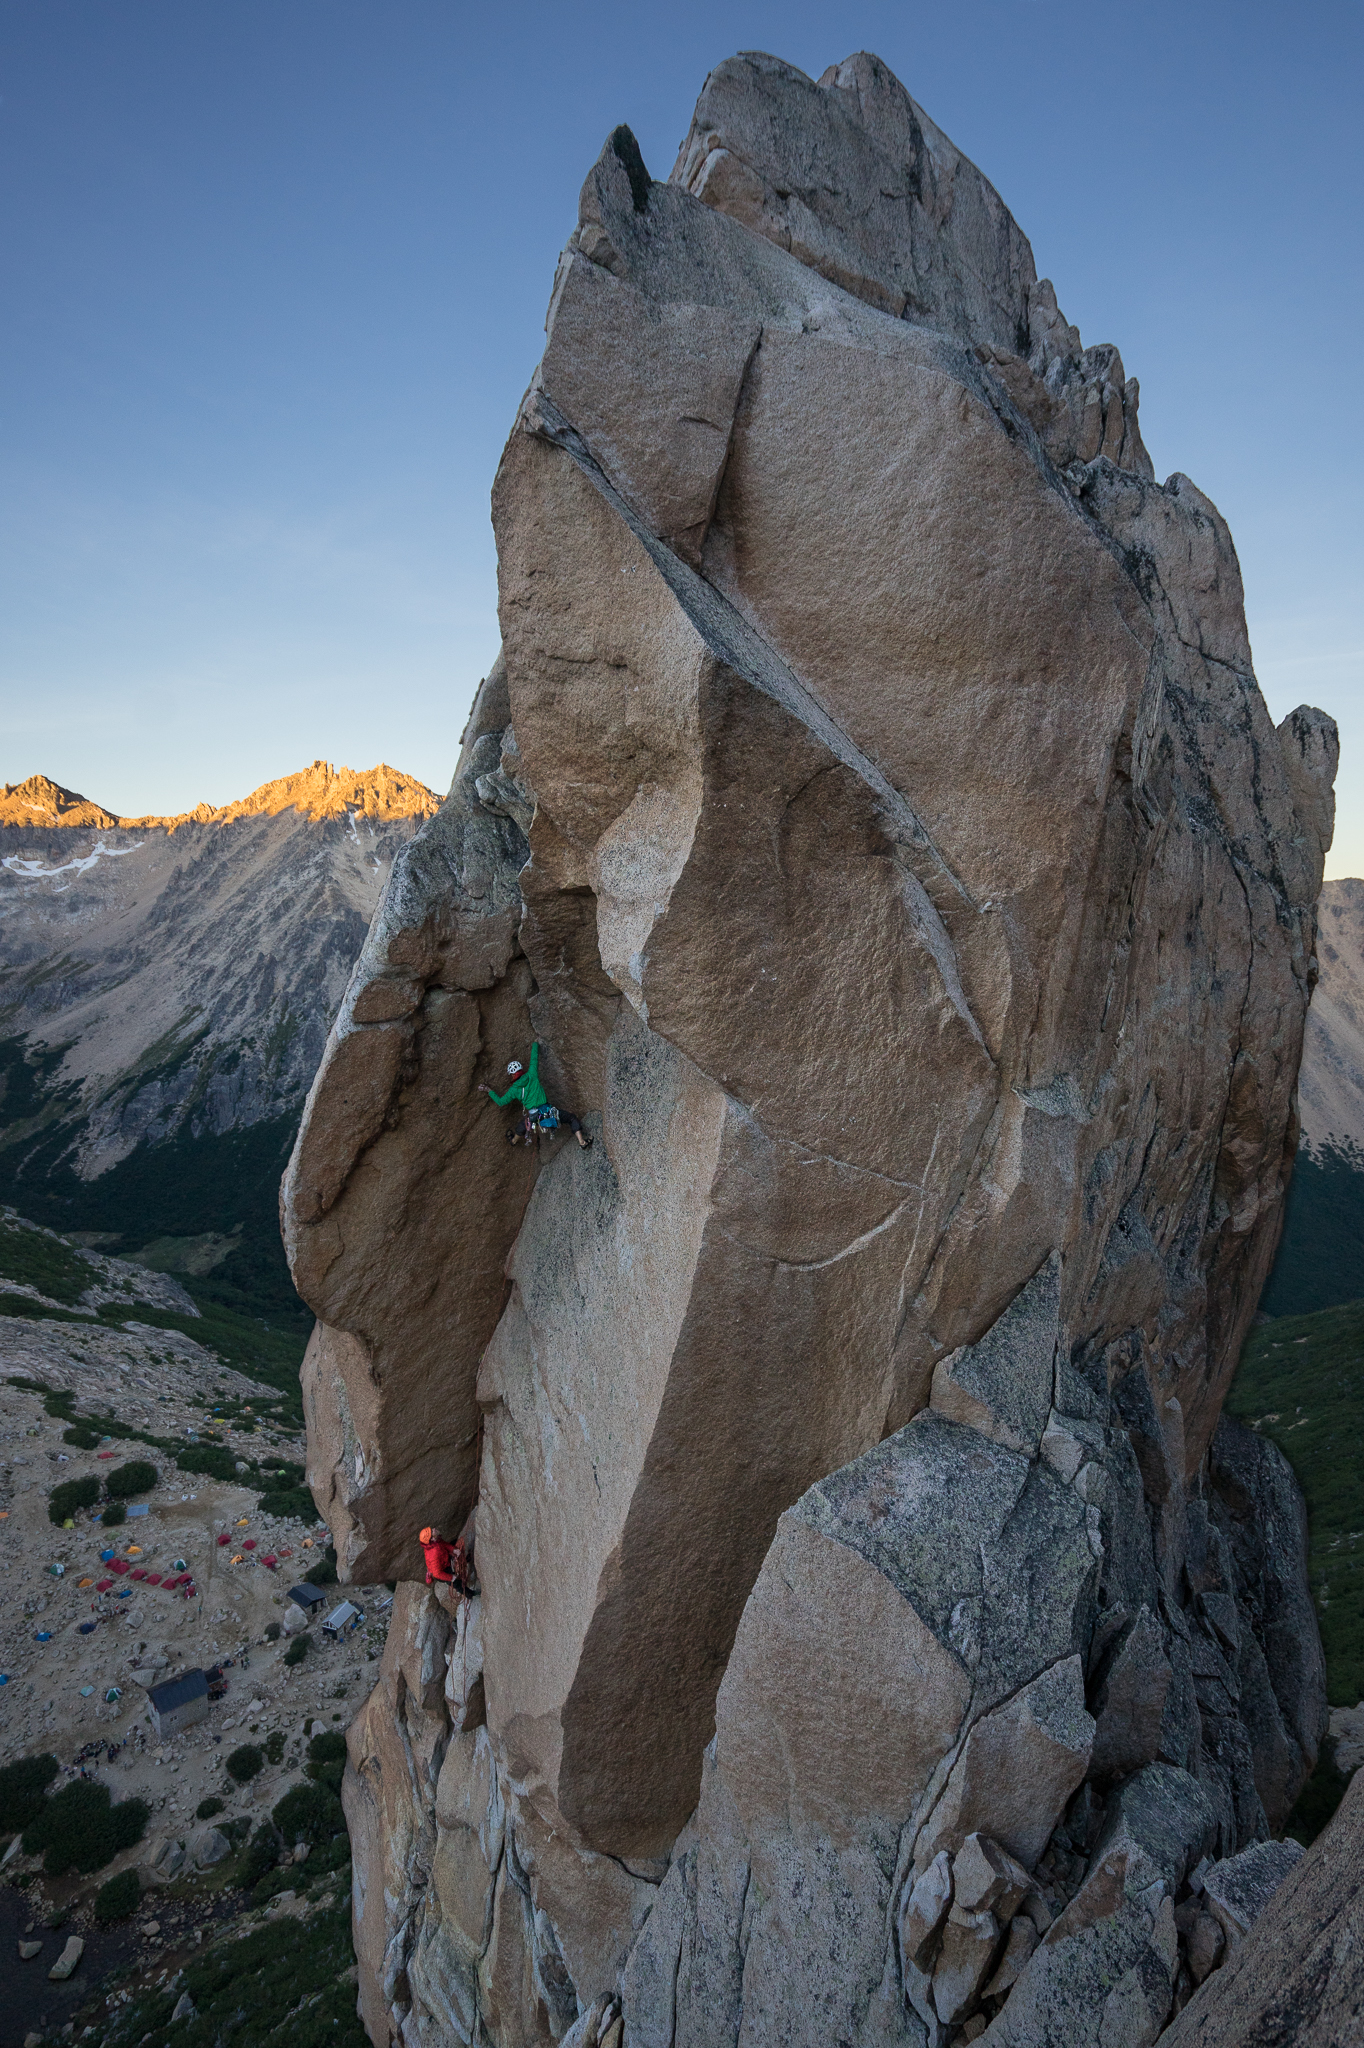 The trip report wouldn't be complete without John's stunning photo of Peter and Emmett on Lost Fingers (5.10+)